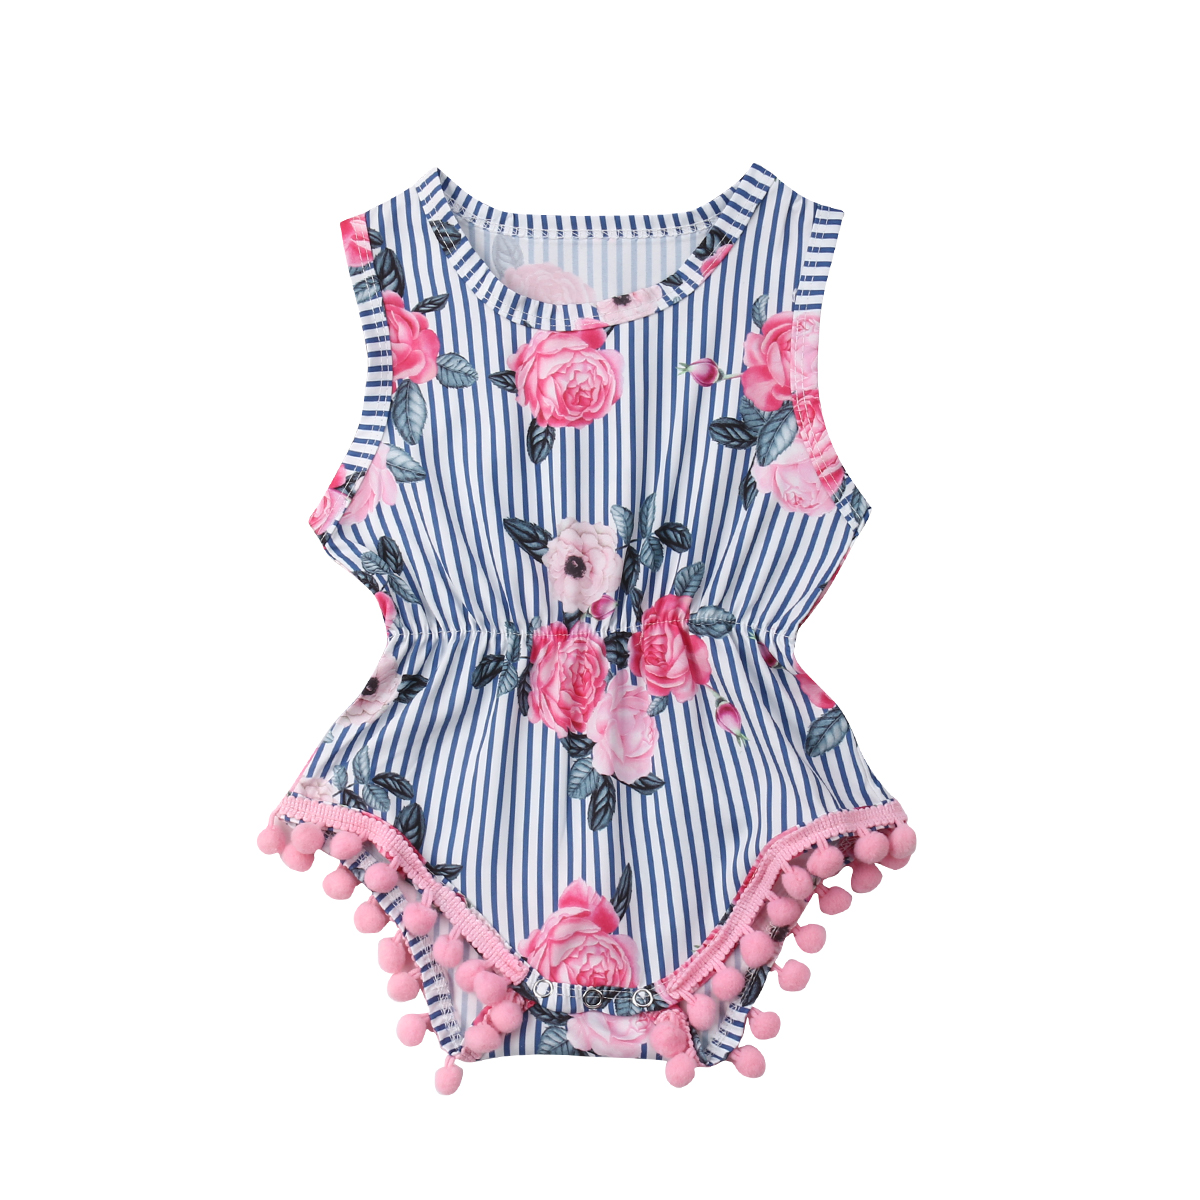 Newborn Baby Girls Sleeveless Cotton Tassel Ball Striped Floral   Romper   Jumpsuit Sunsuit One Piece Outfits Summer Clothes